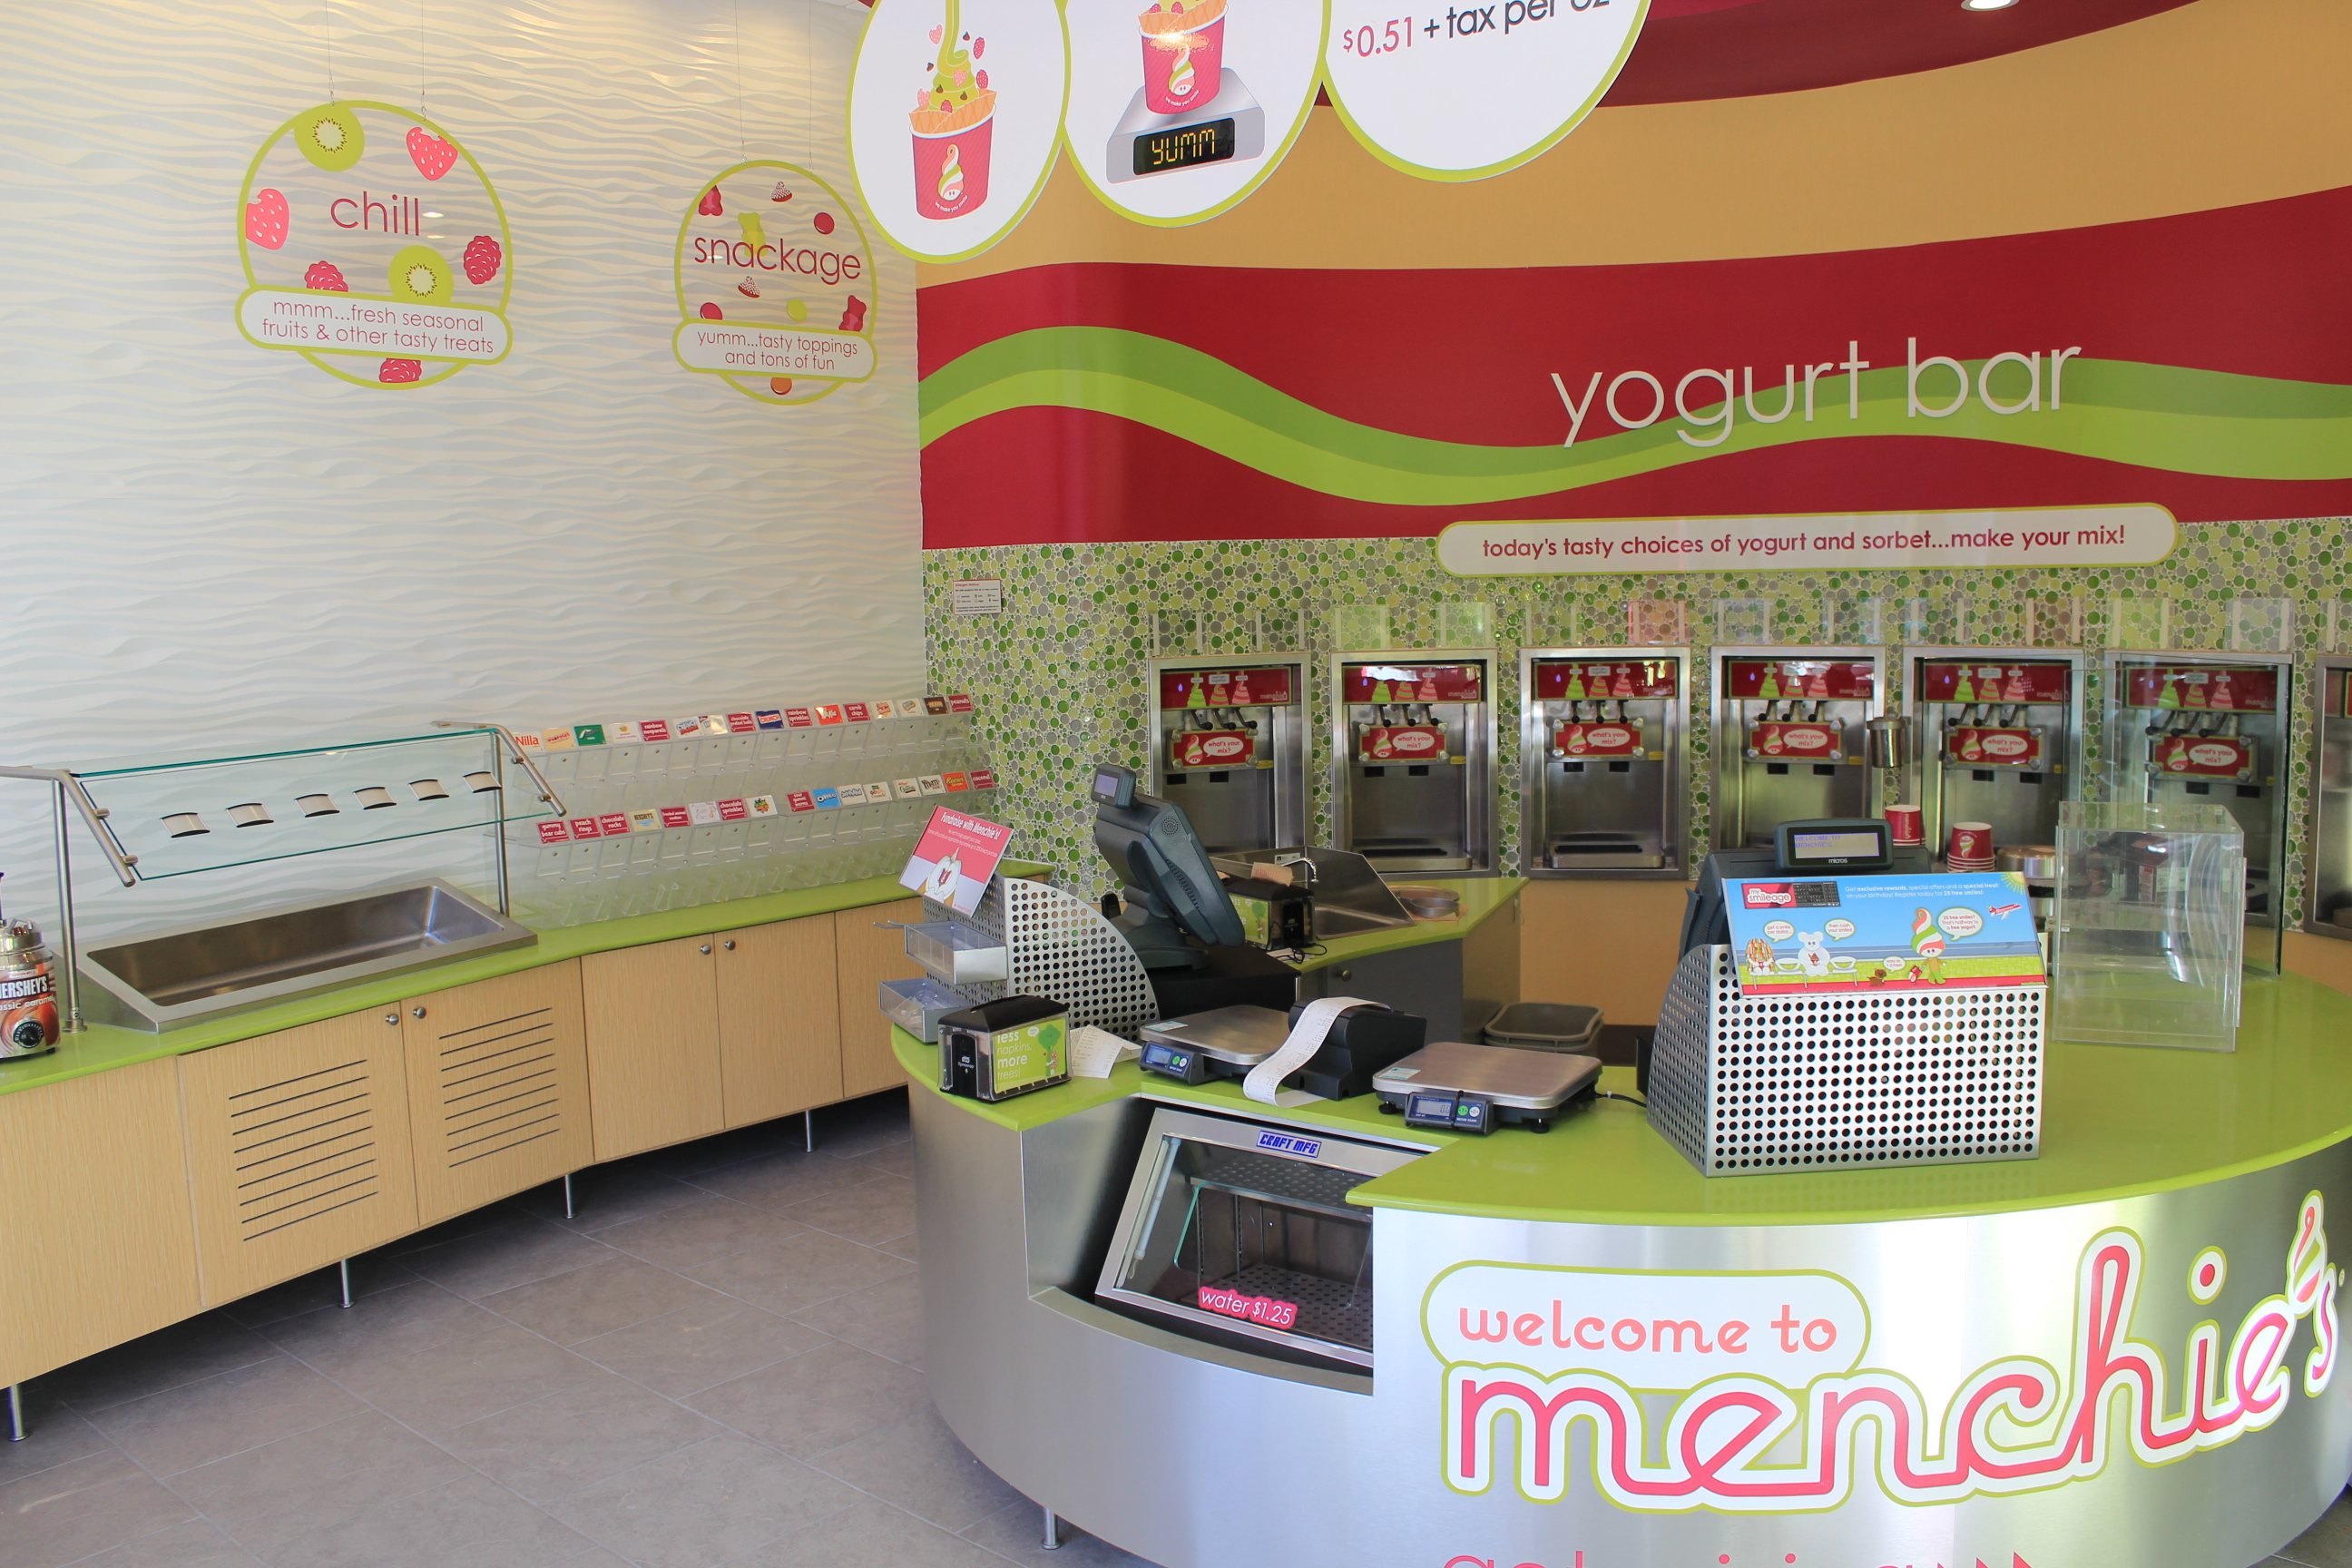 commercial urbanbuilt page  new construction of the menchie s frozen yogurt in towson square is complete and it is ready for business towson square is the perfect location for a